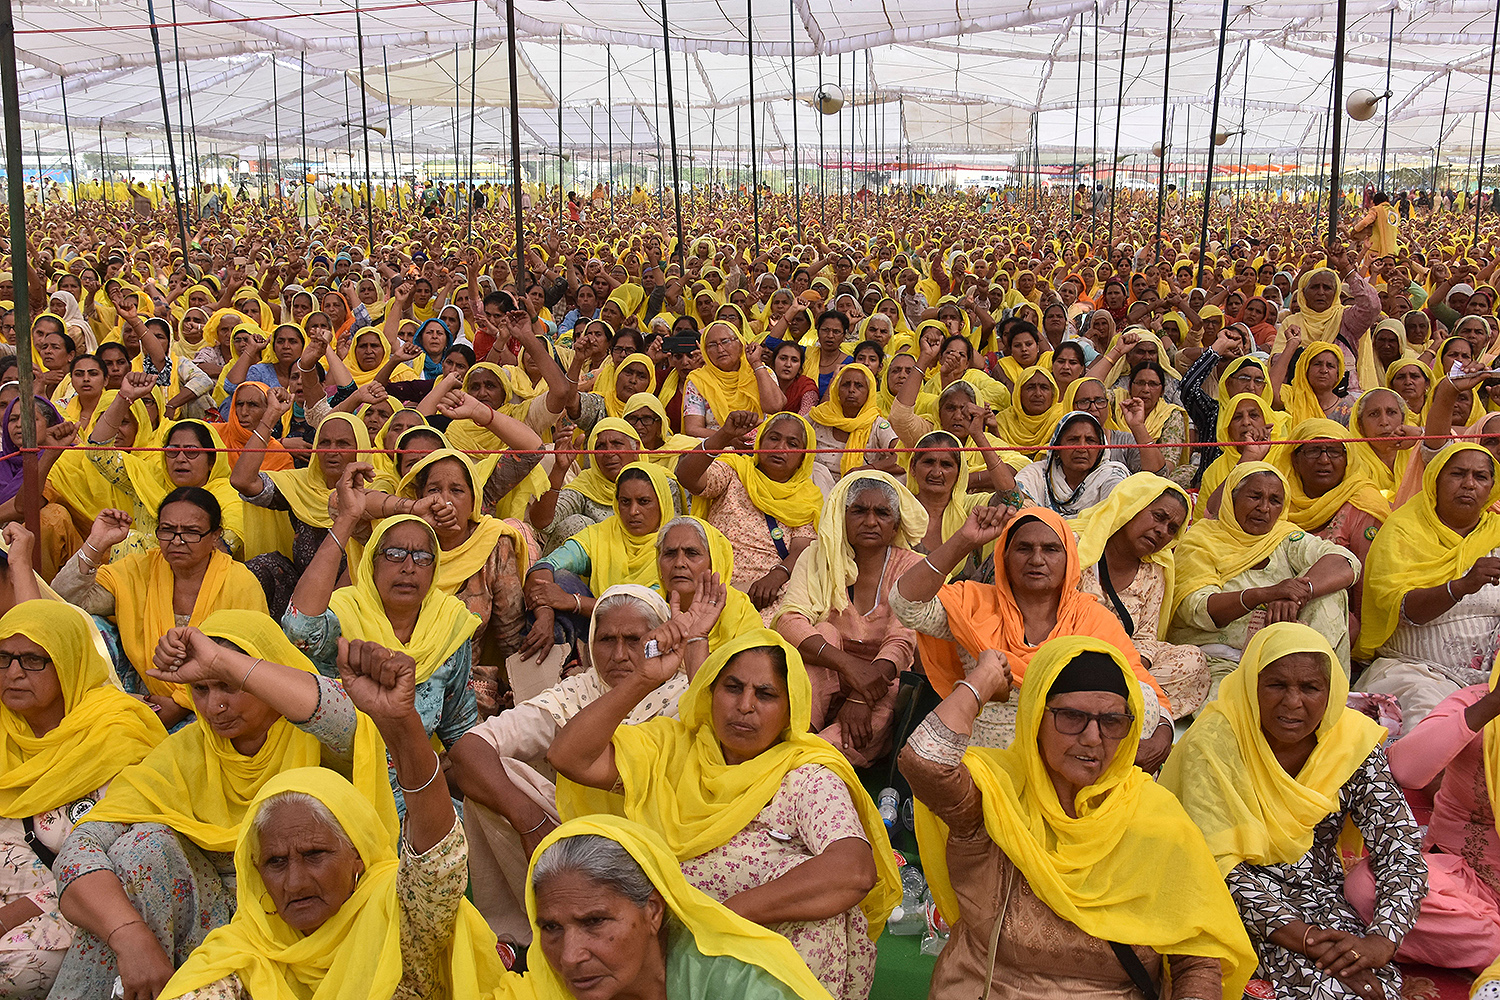 Female farmers shout slogans as they demonstrate against the central government's recent agricultural reforms on International Women's Day, March 8, at the Tikri border in Bahadurgarh, Haryana, India. AFP via Getty Images